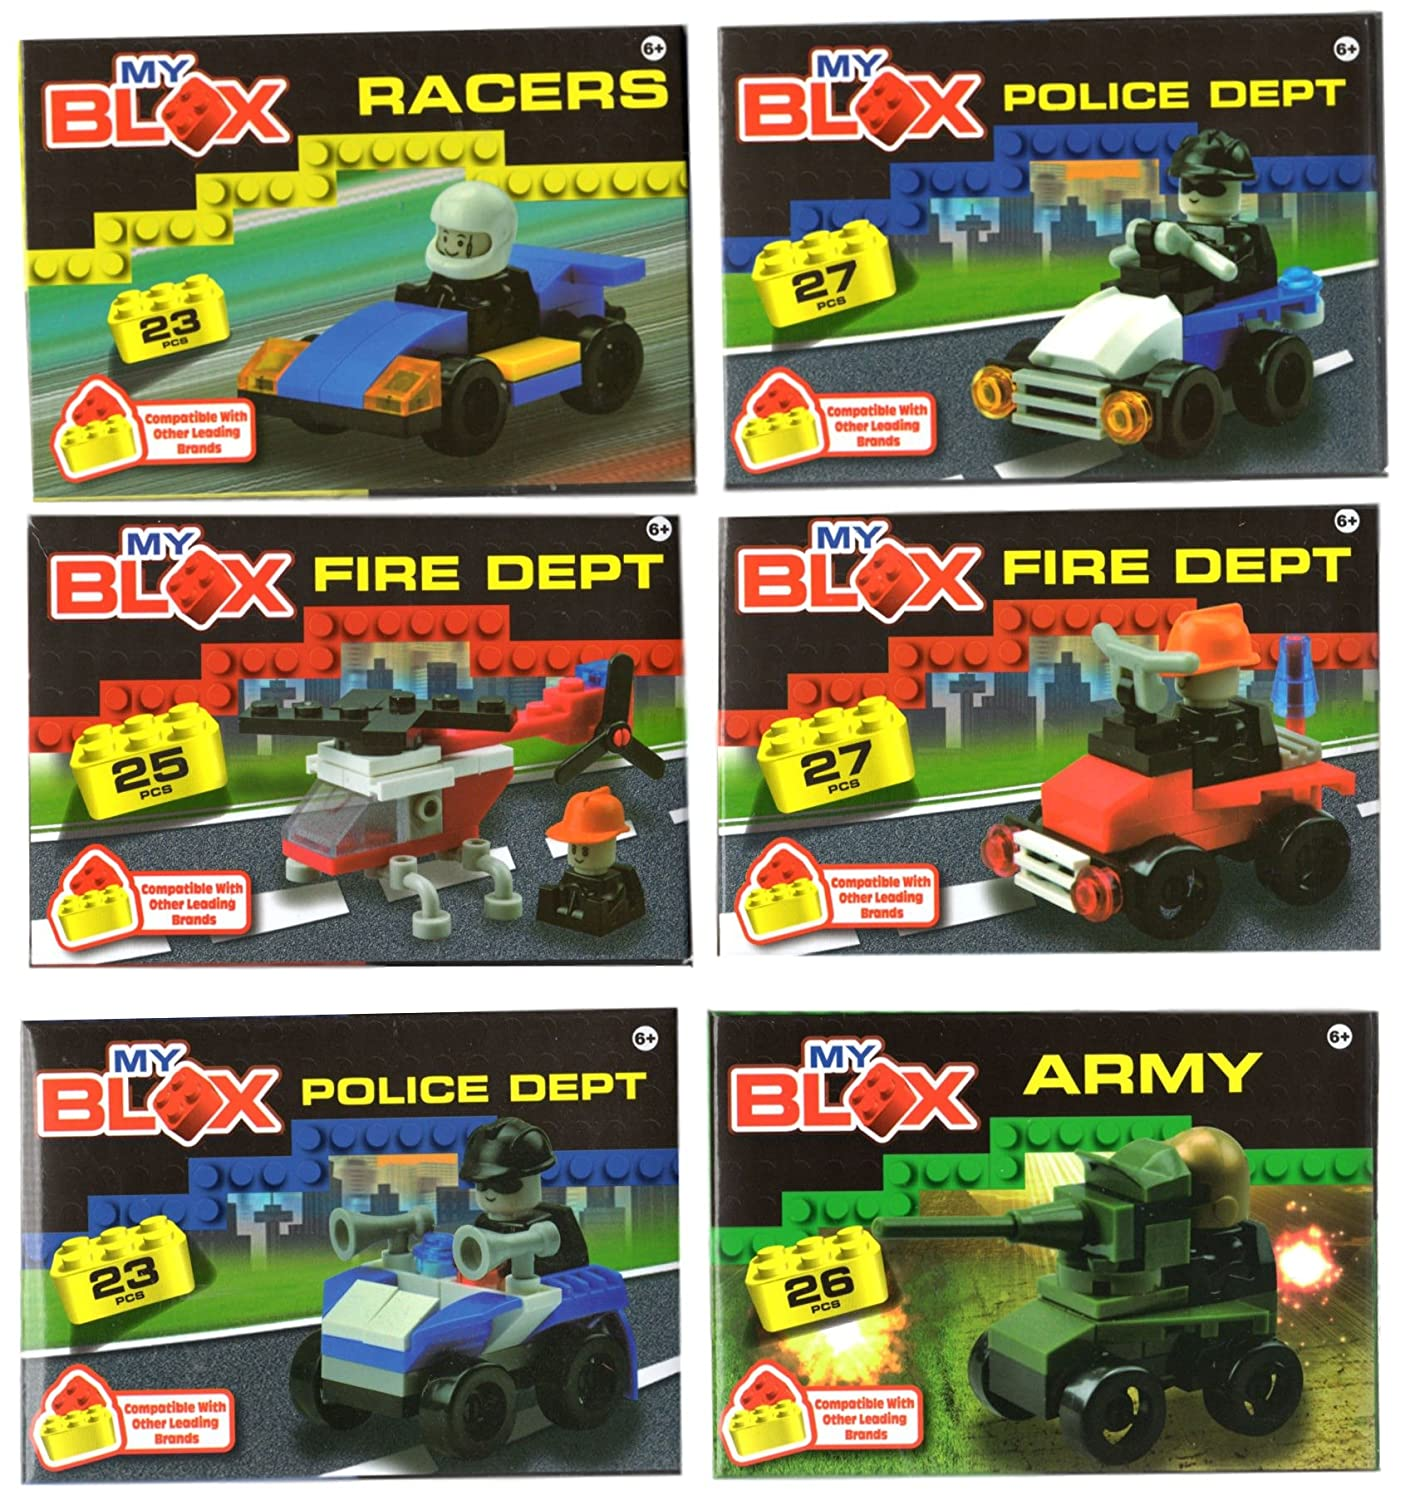 My Blox Building Blocks 6 Sets for Boys Fire Truck, Army Tank, Police Car, Race Car, and Helicopter Bundle of 6 Kits